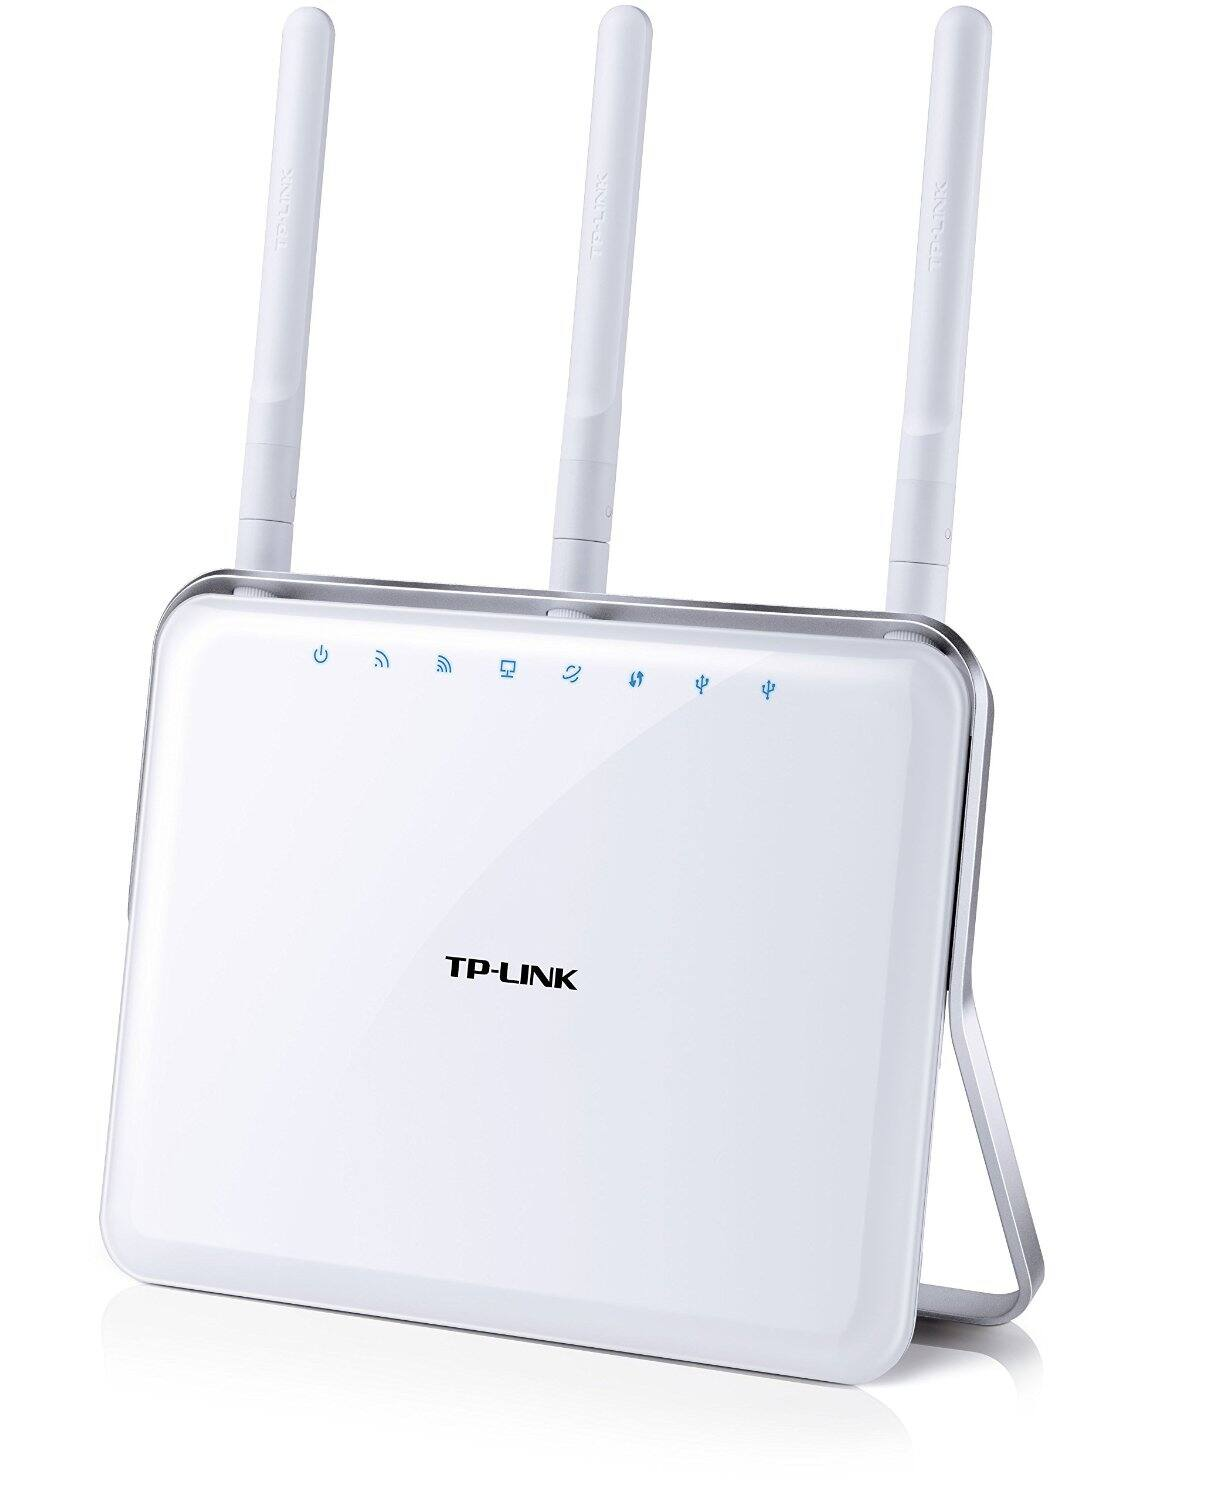 TP-Link AC1900 Archer C9 Dual Band Wireless Gigabit Router  $100 + Free S/H